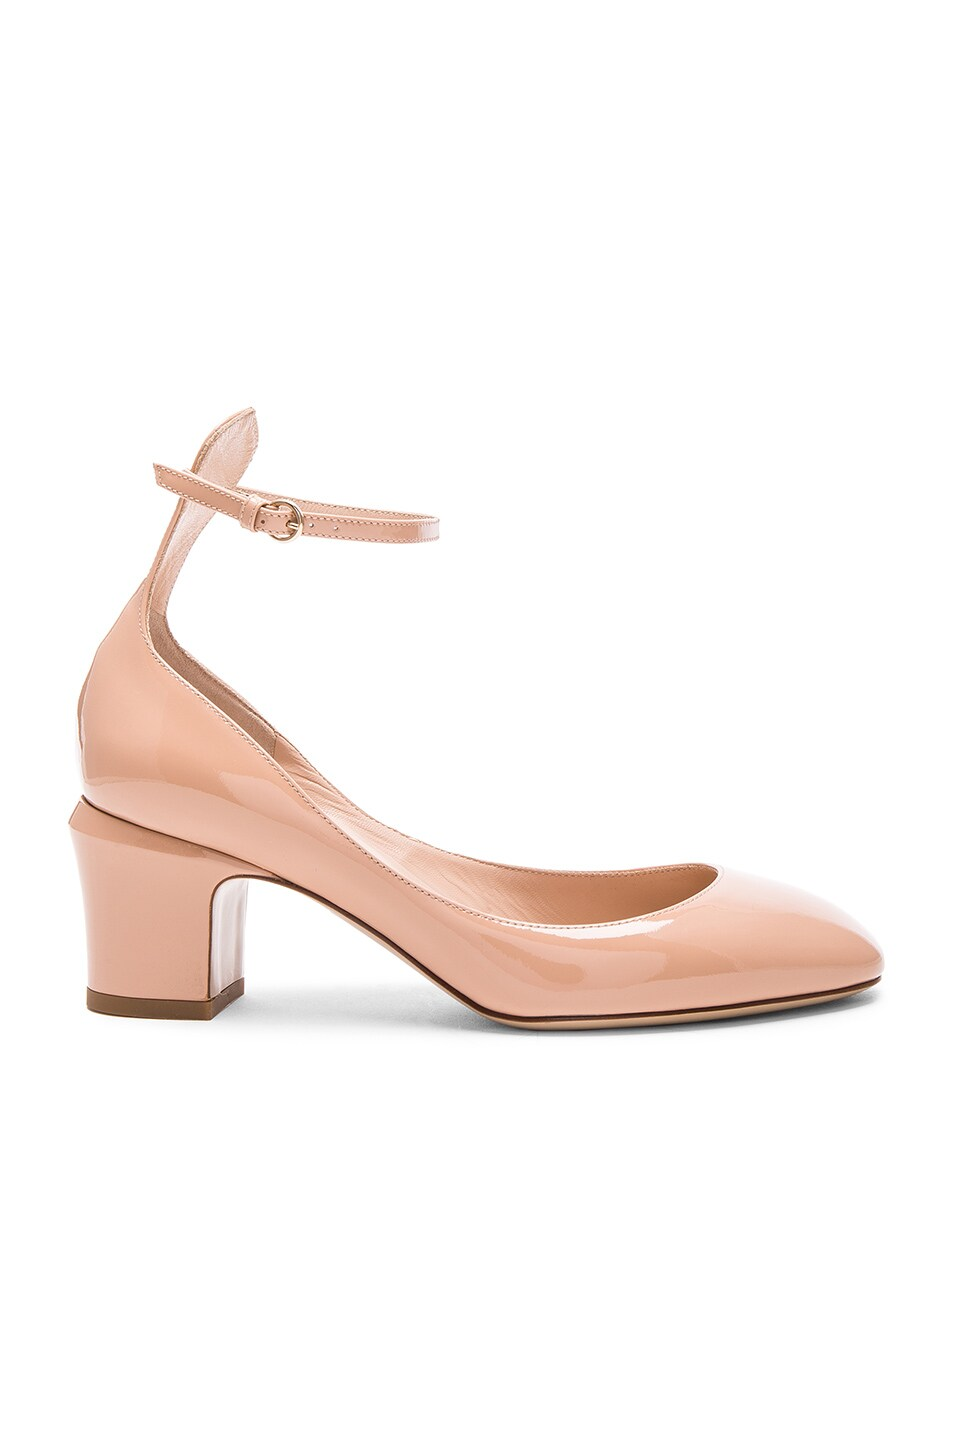 Image 1 of Valentino Patent Leather Tan-Go Pumps in Nude